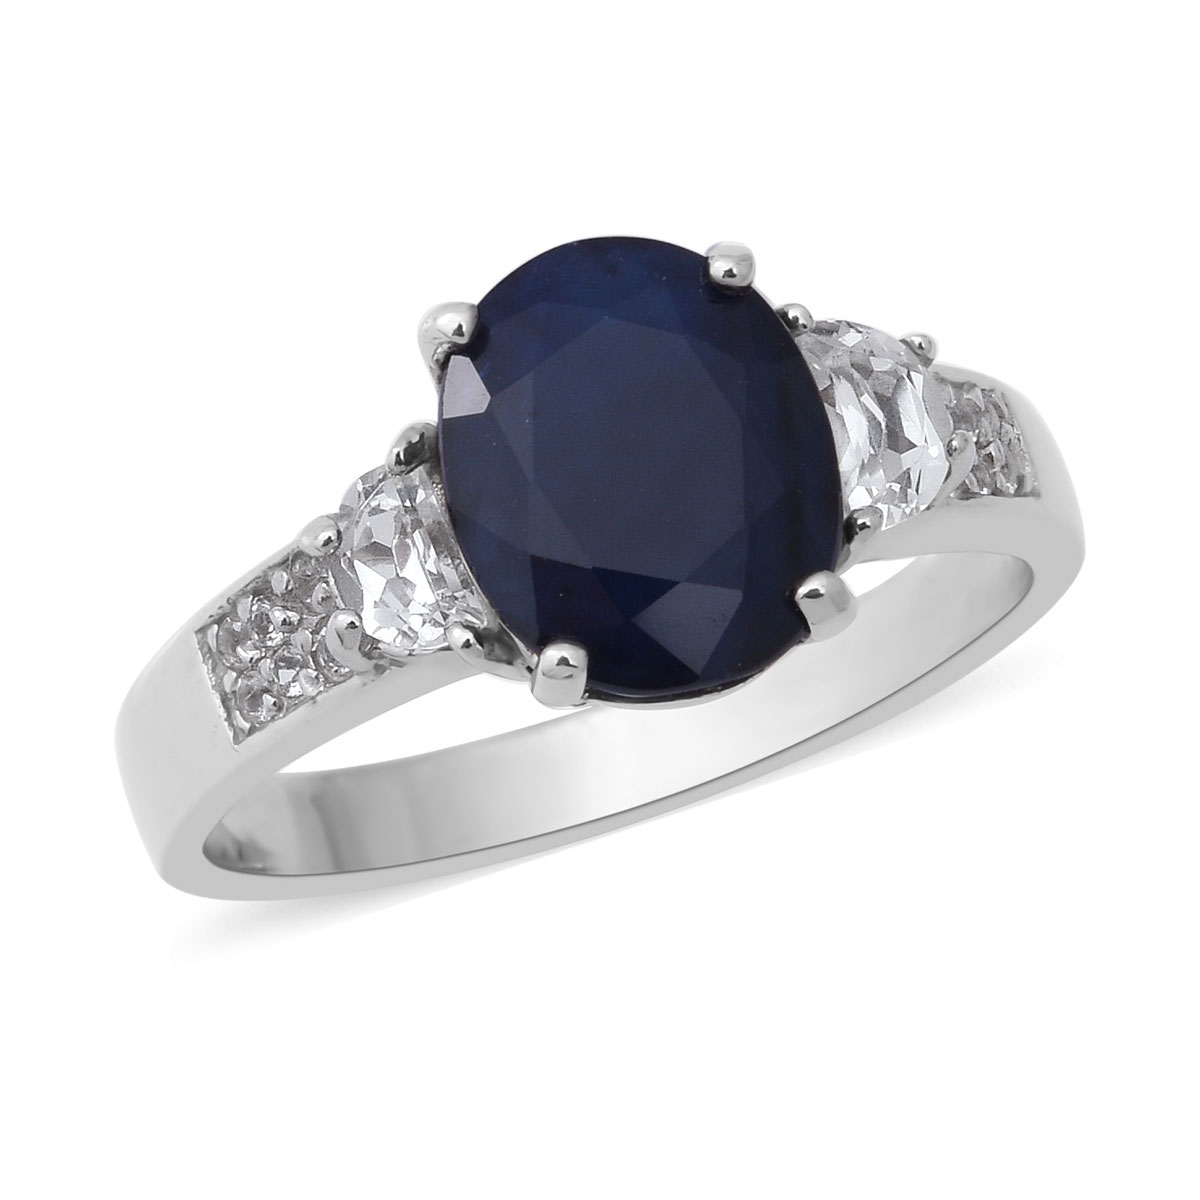 Shop LC Delivering Joy Solitaire Ring Oval Sky Blue Topaz Jewelry for Women Size 11 Ct 3.4